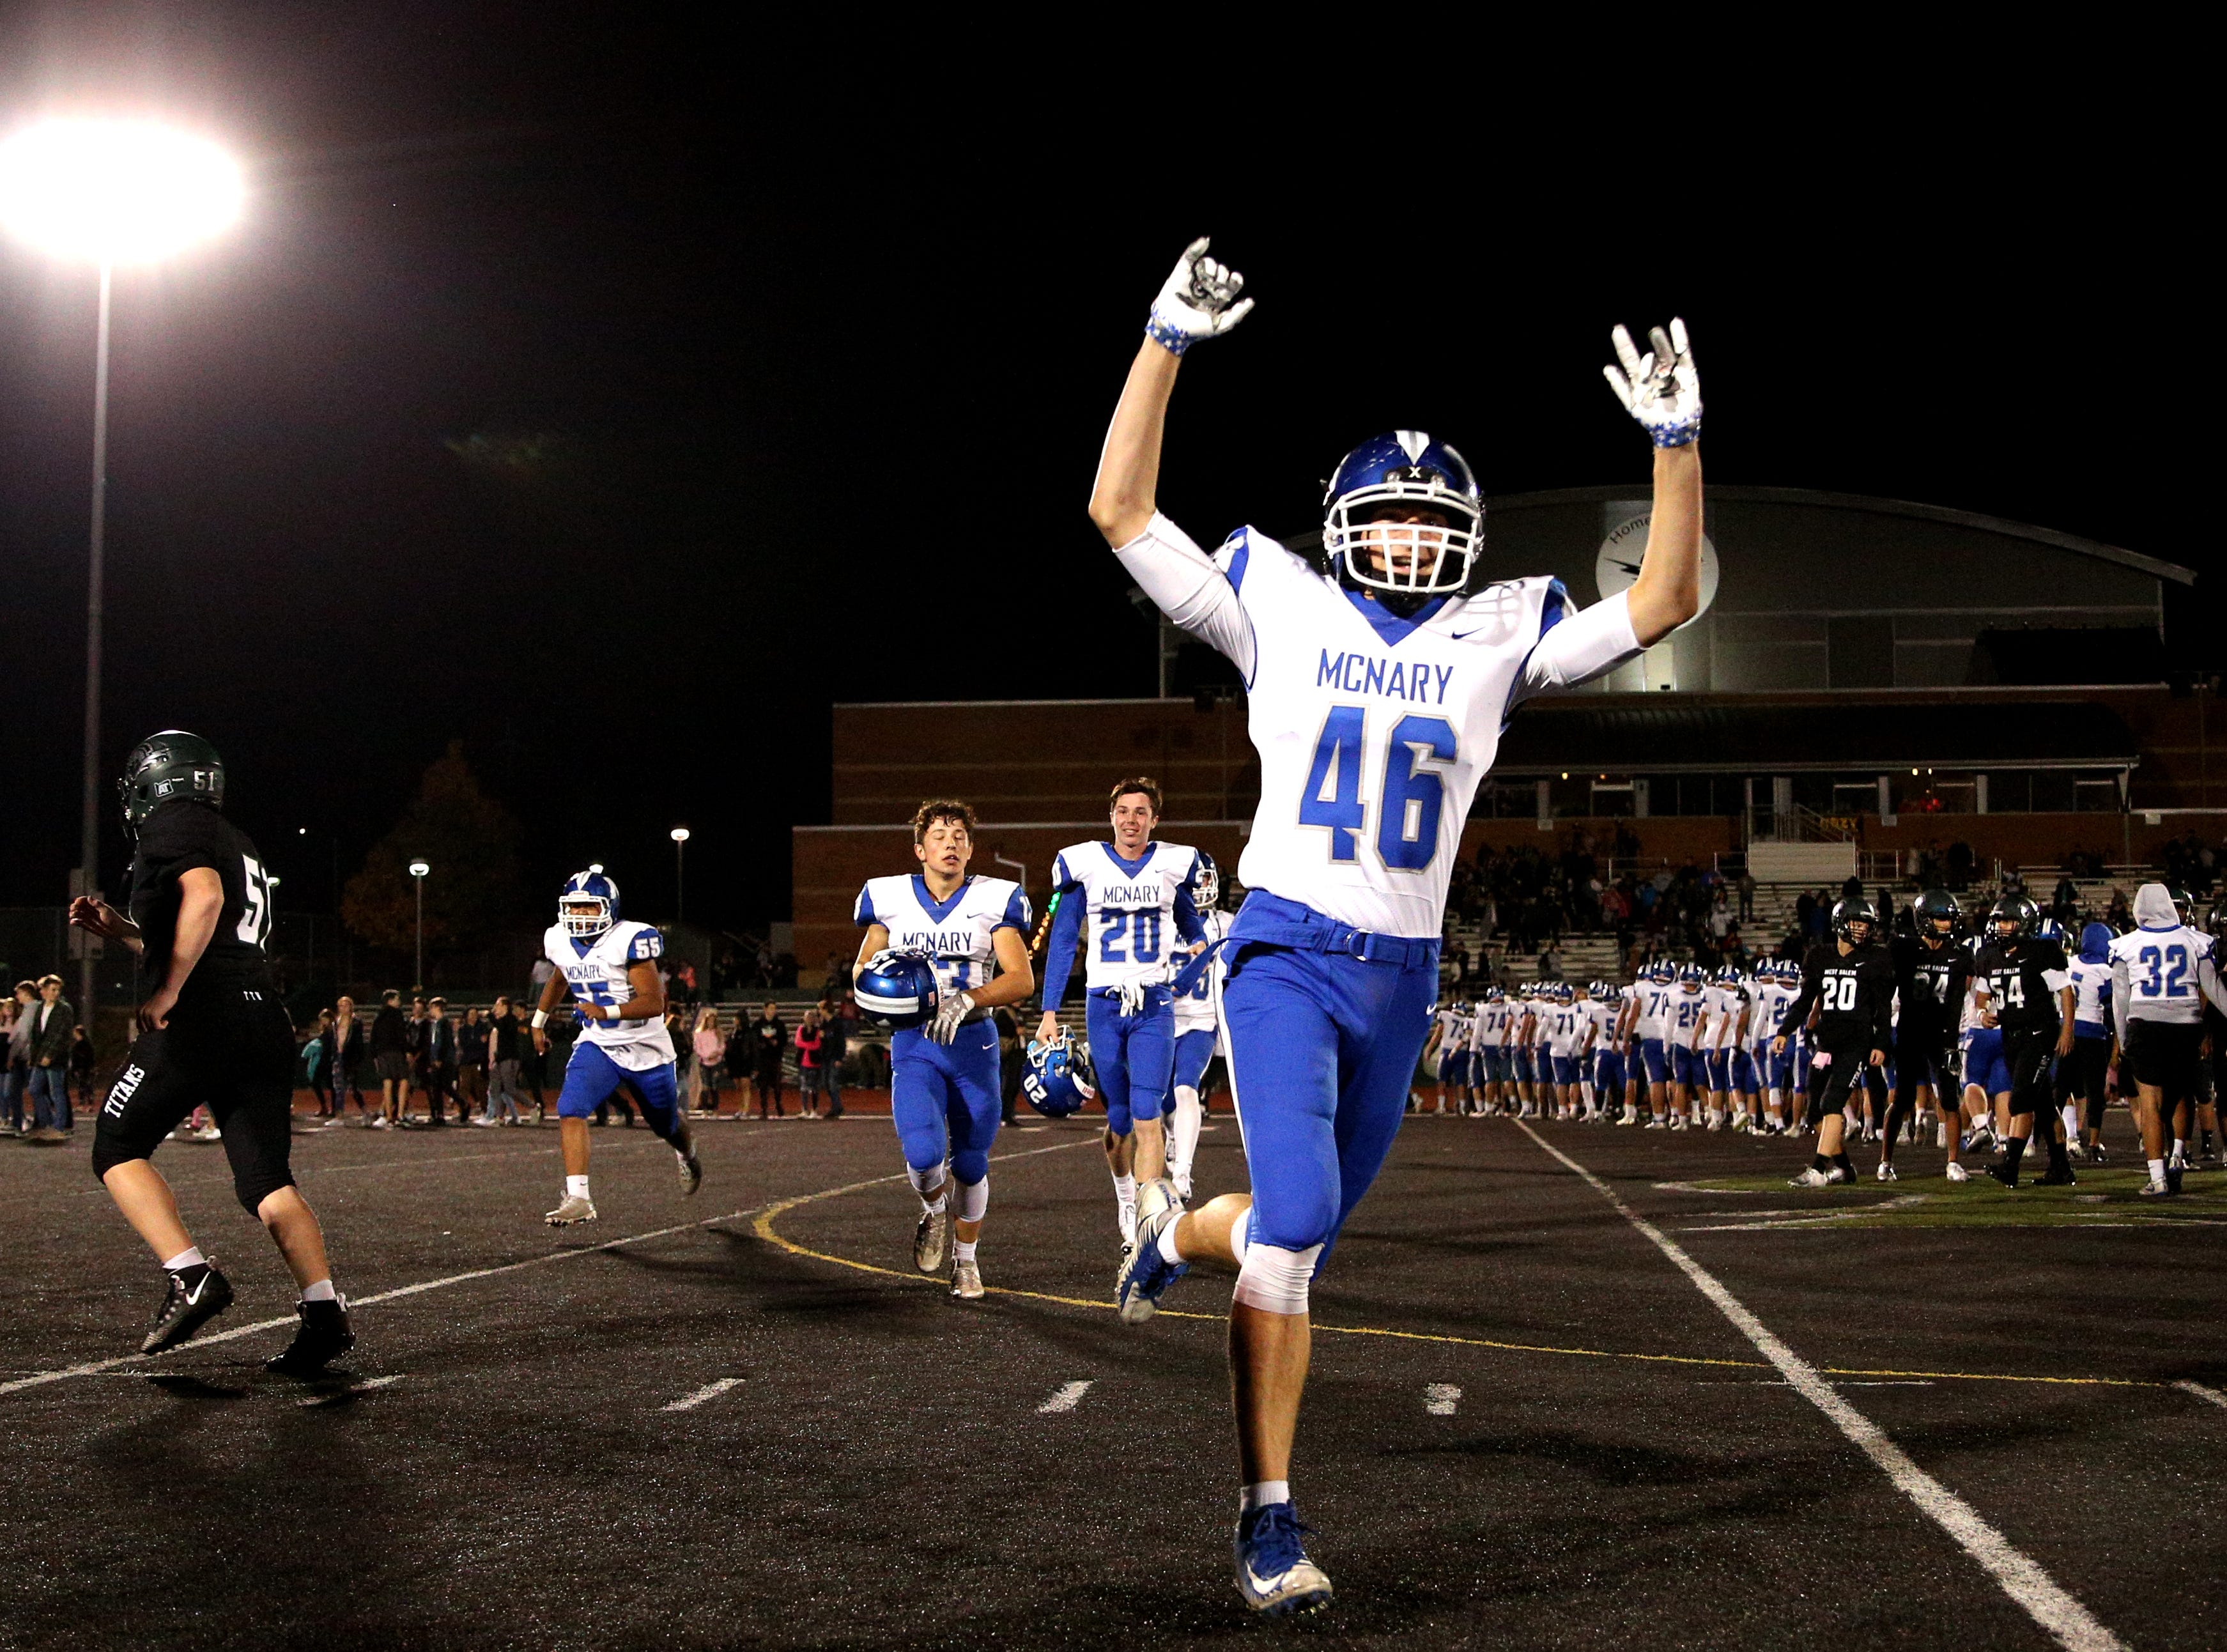 McNary's Griffin Hubbard (46) celebrates after his team defeated West Salem, 35-23, at West Salem High School on Friday, Oct. 19.